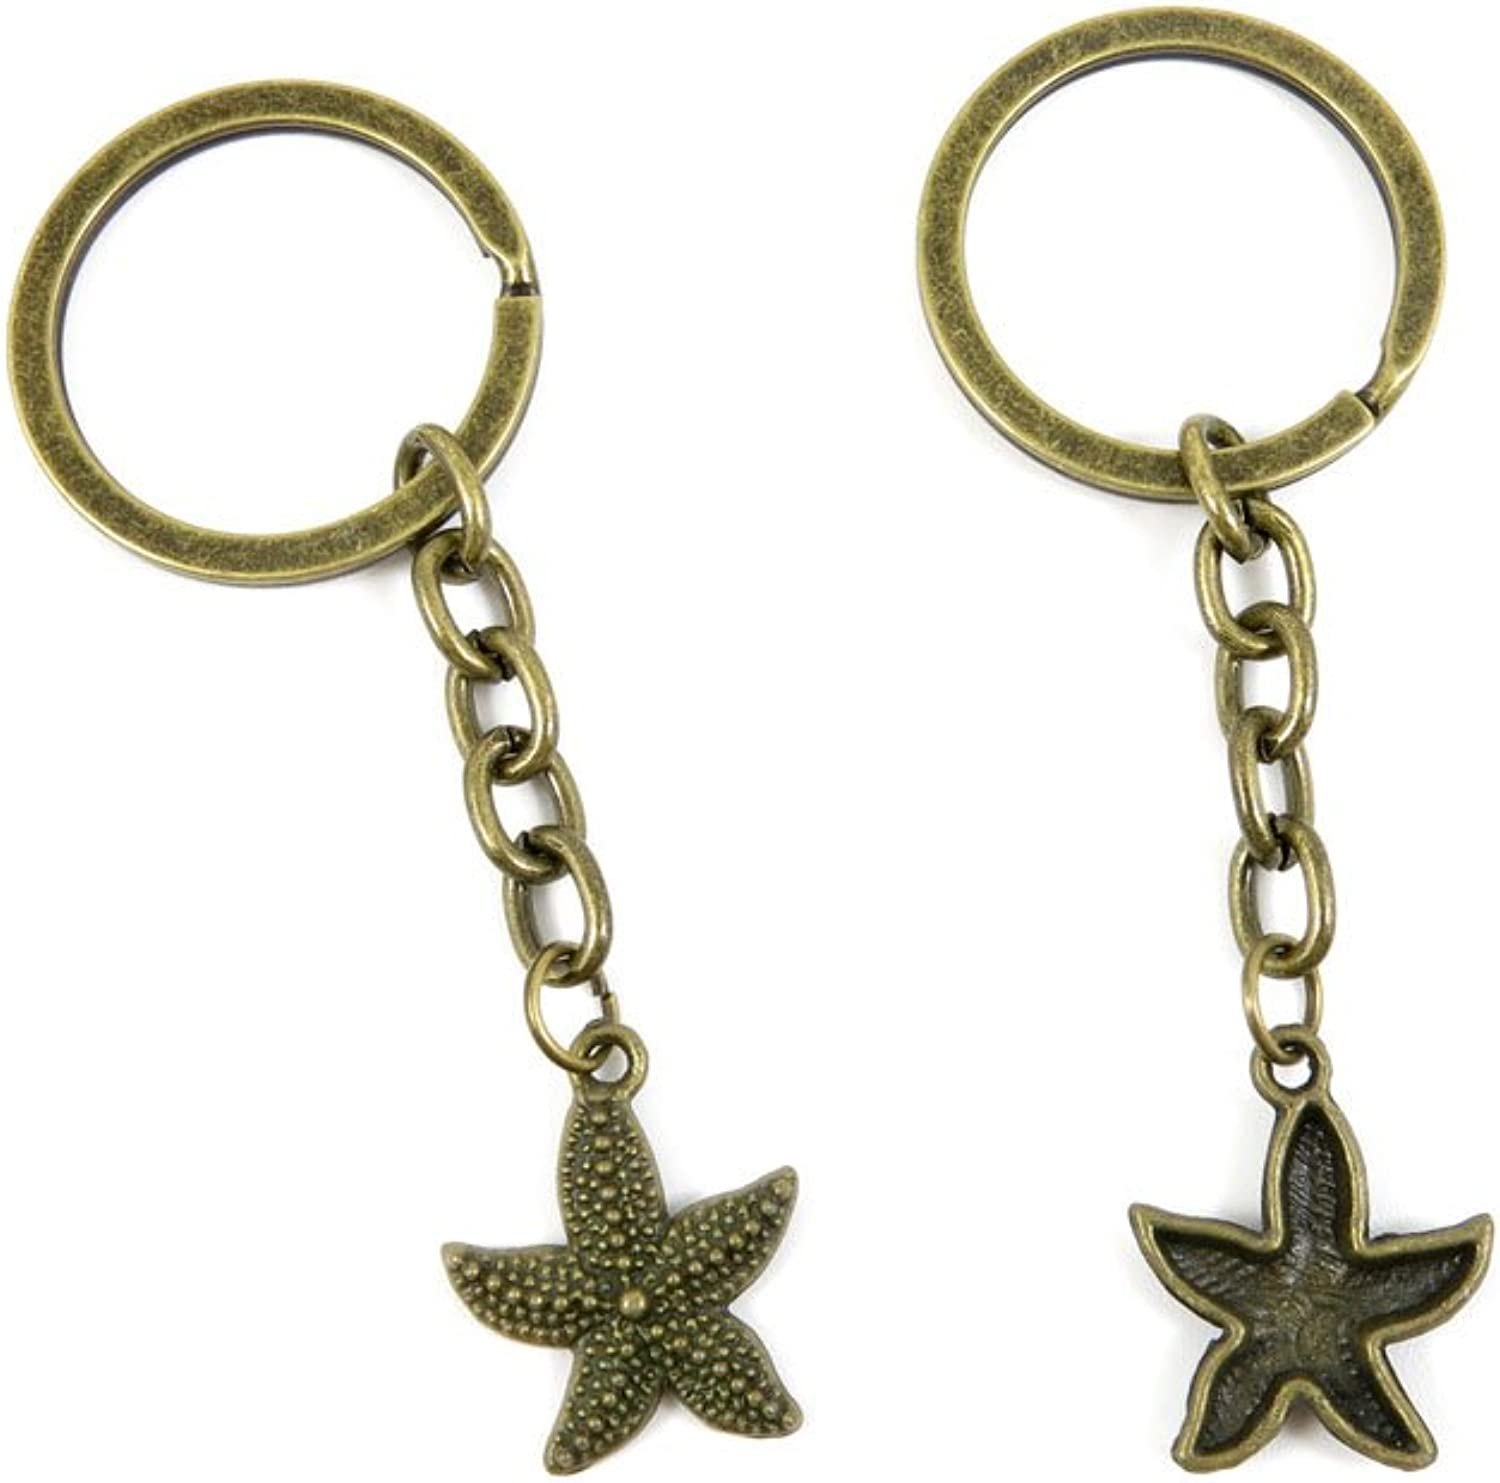 200 Pieces Fashion Jewelry Keyring Keychain Door Car Key Tag Ring Chain Supplier Supply Wholesale Bulk Lots Q4LZ3 Starfish Sea Star